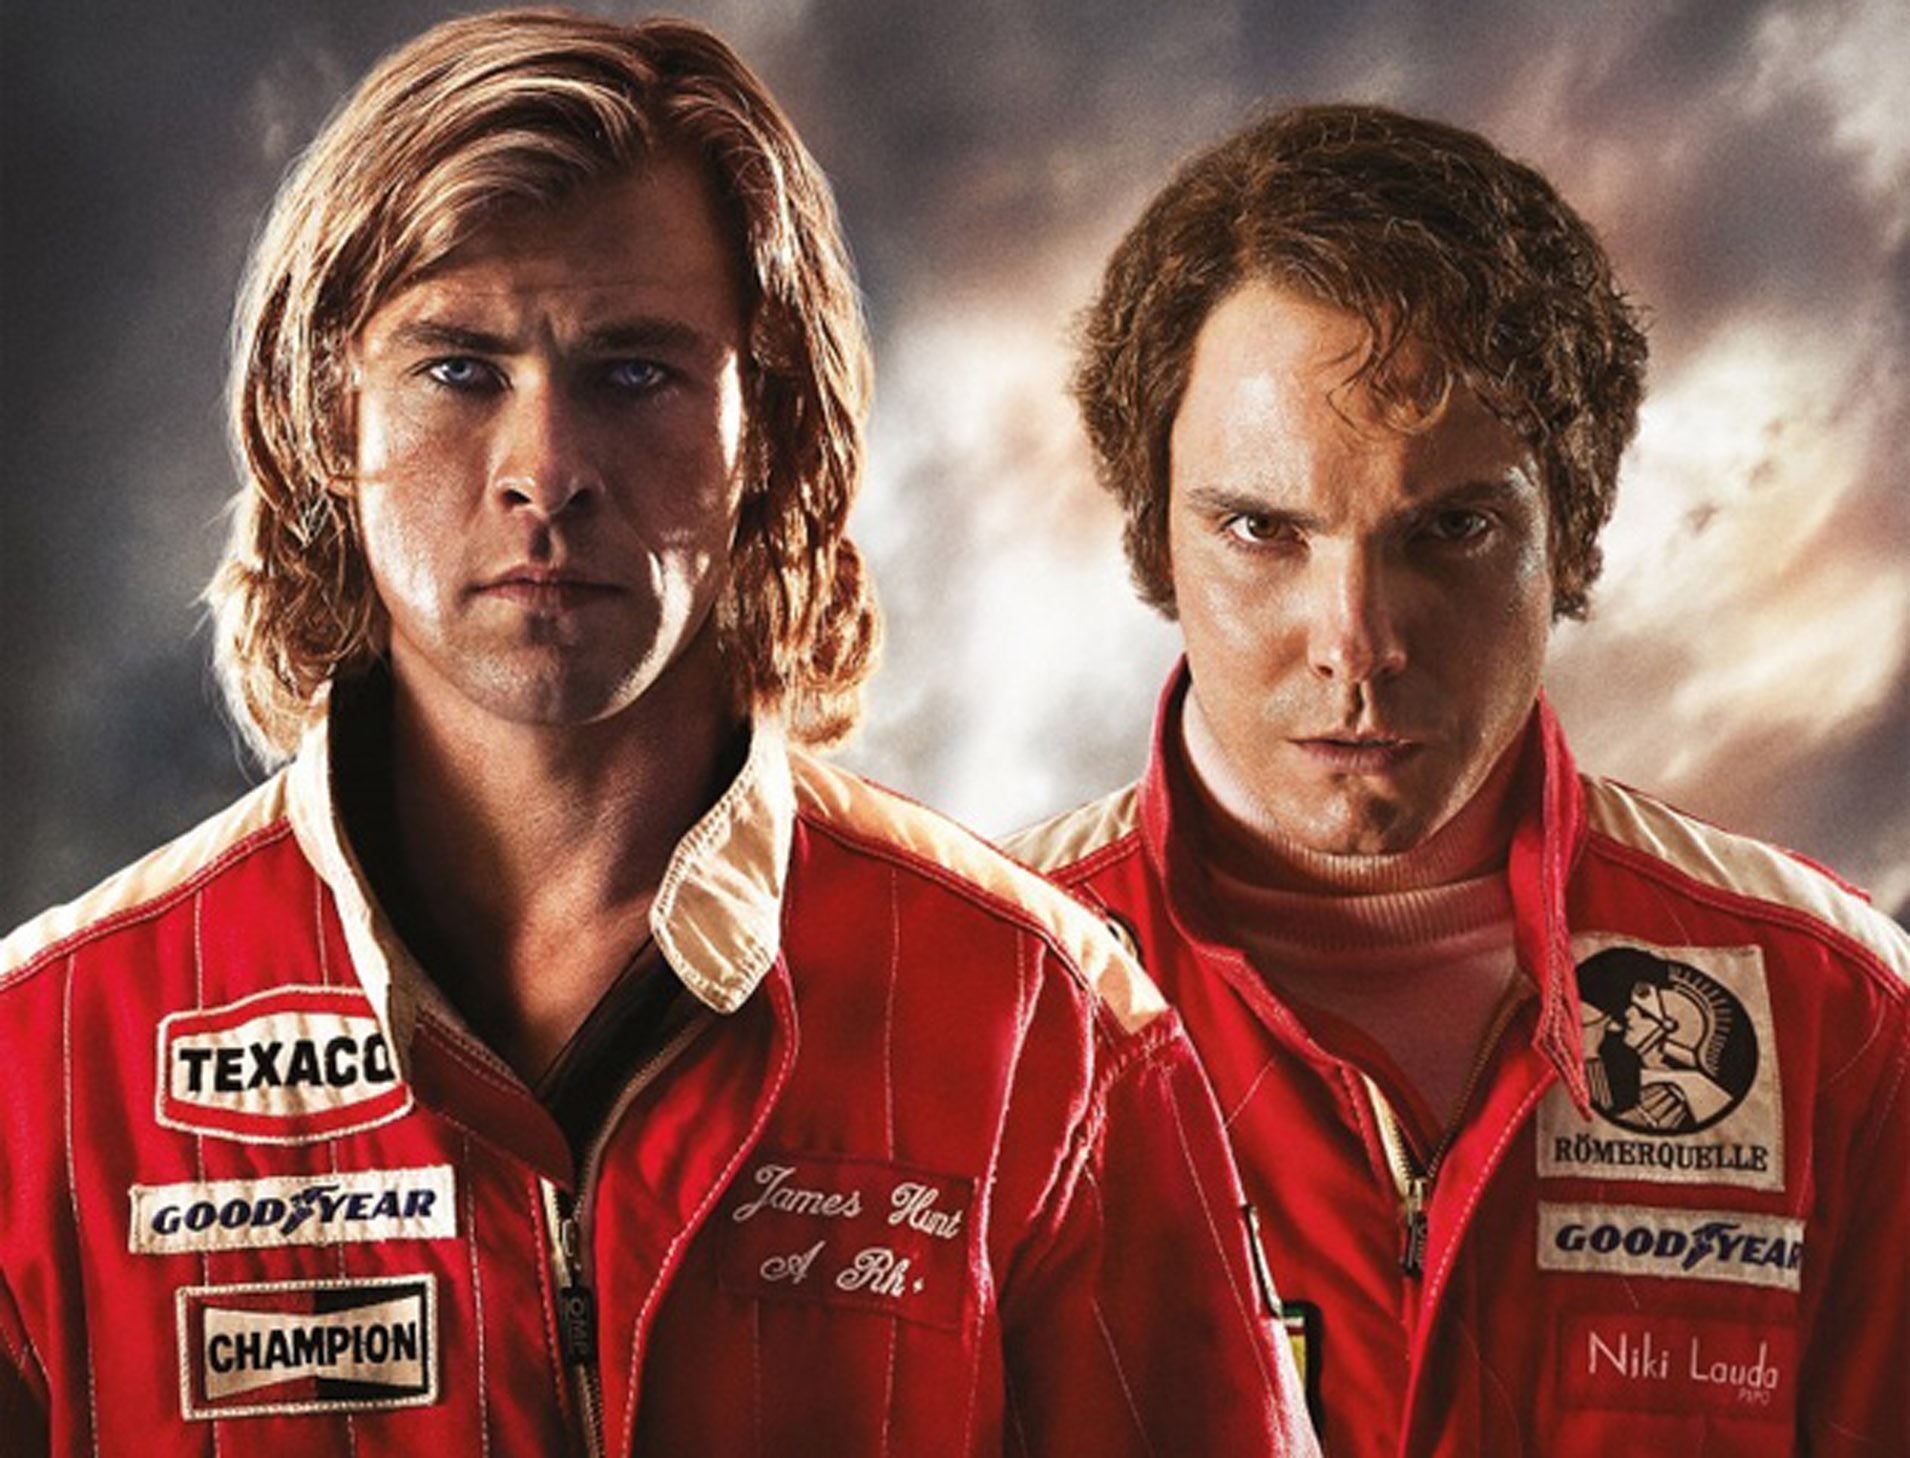 Rush movie new hd wallpapers high definition all hd wallpapers rush movie new hd wallpapers high definition rush 1 rush movie poster voltagebd Image collections